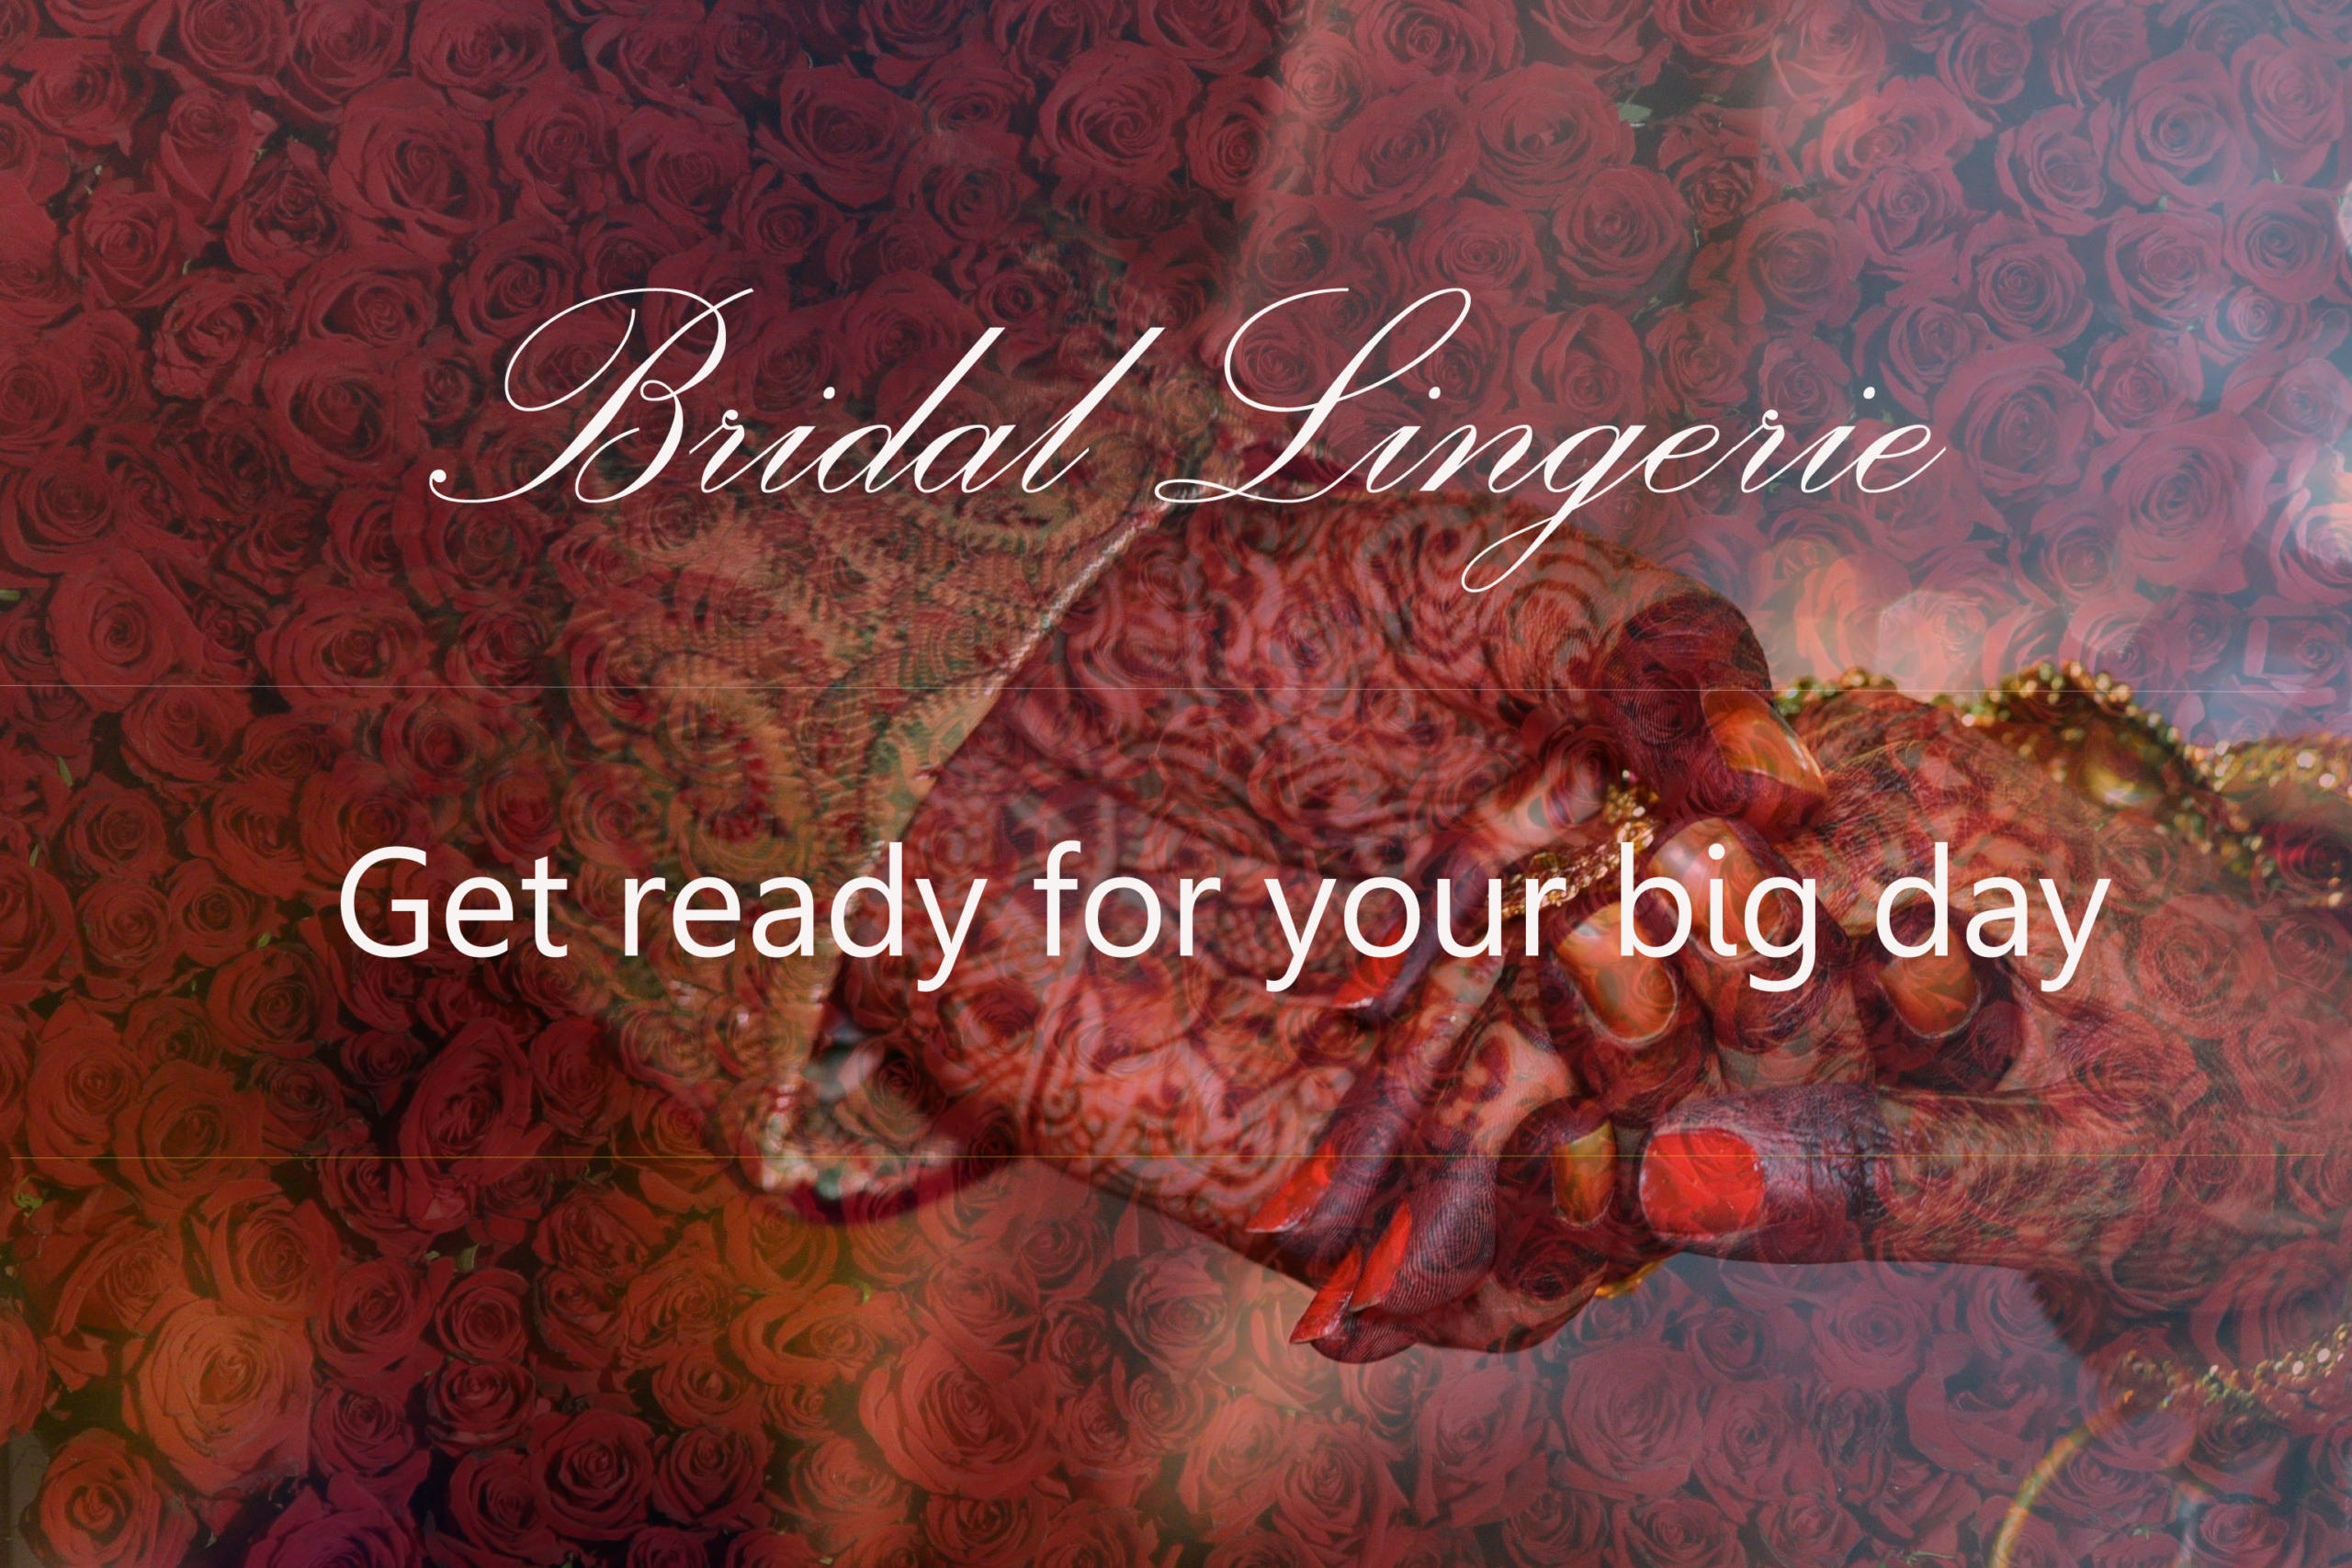 6 Things To Consider When Buying Your Bridal Lingerie